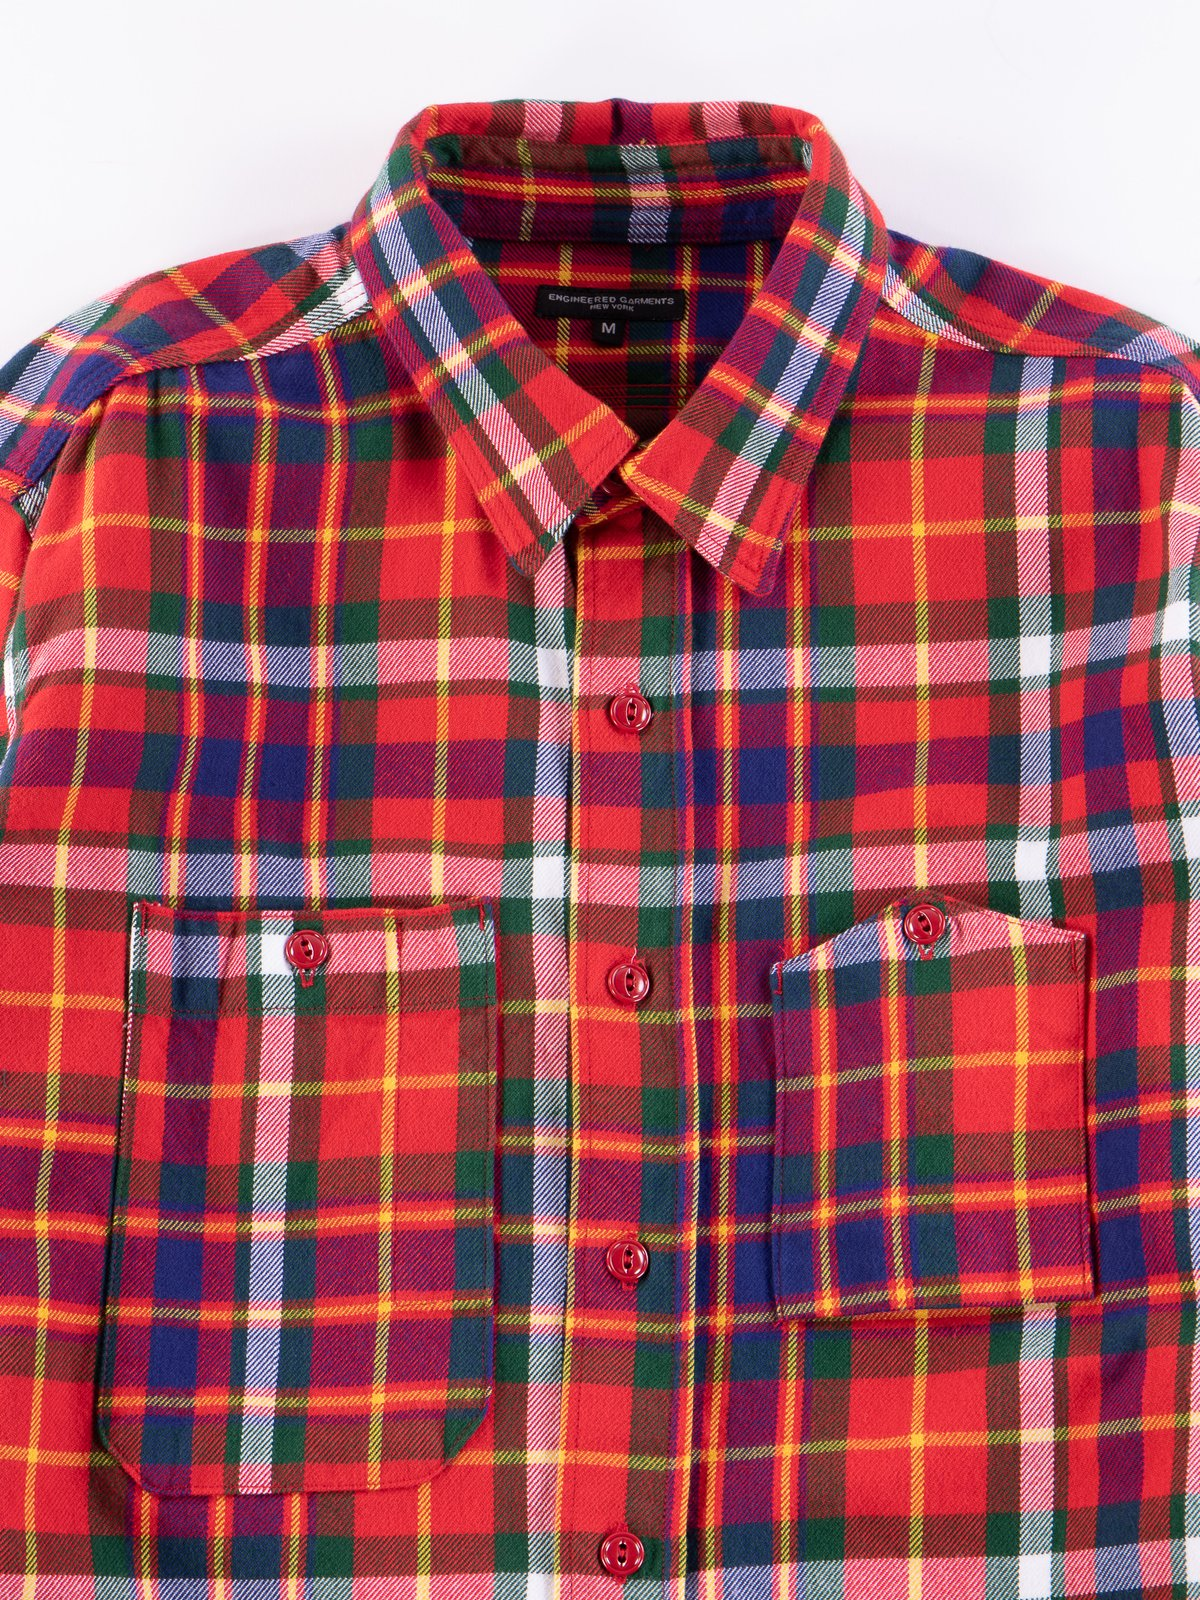 Red/Green/Yellow Cotton Twill Plaid Work Shirt - Image 3